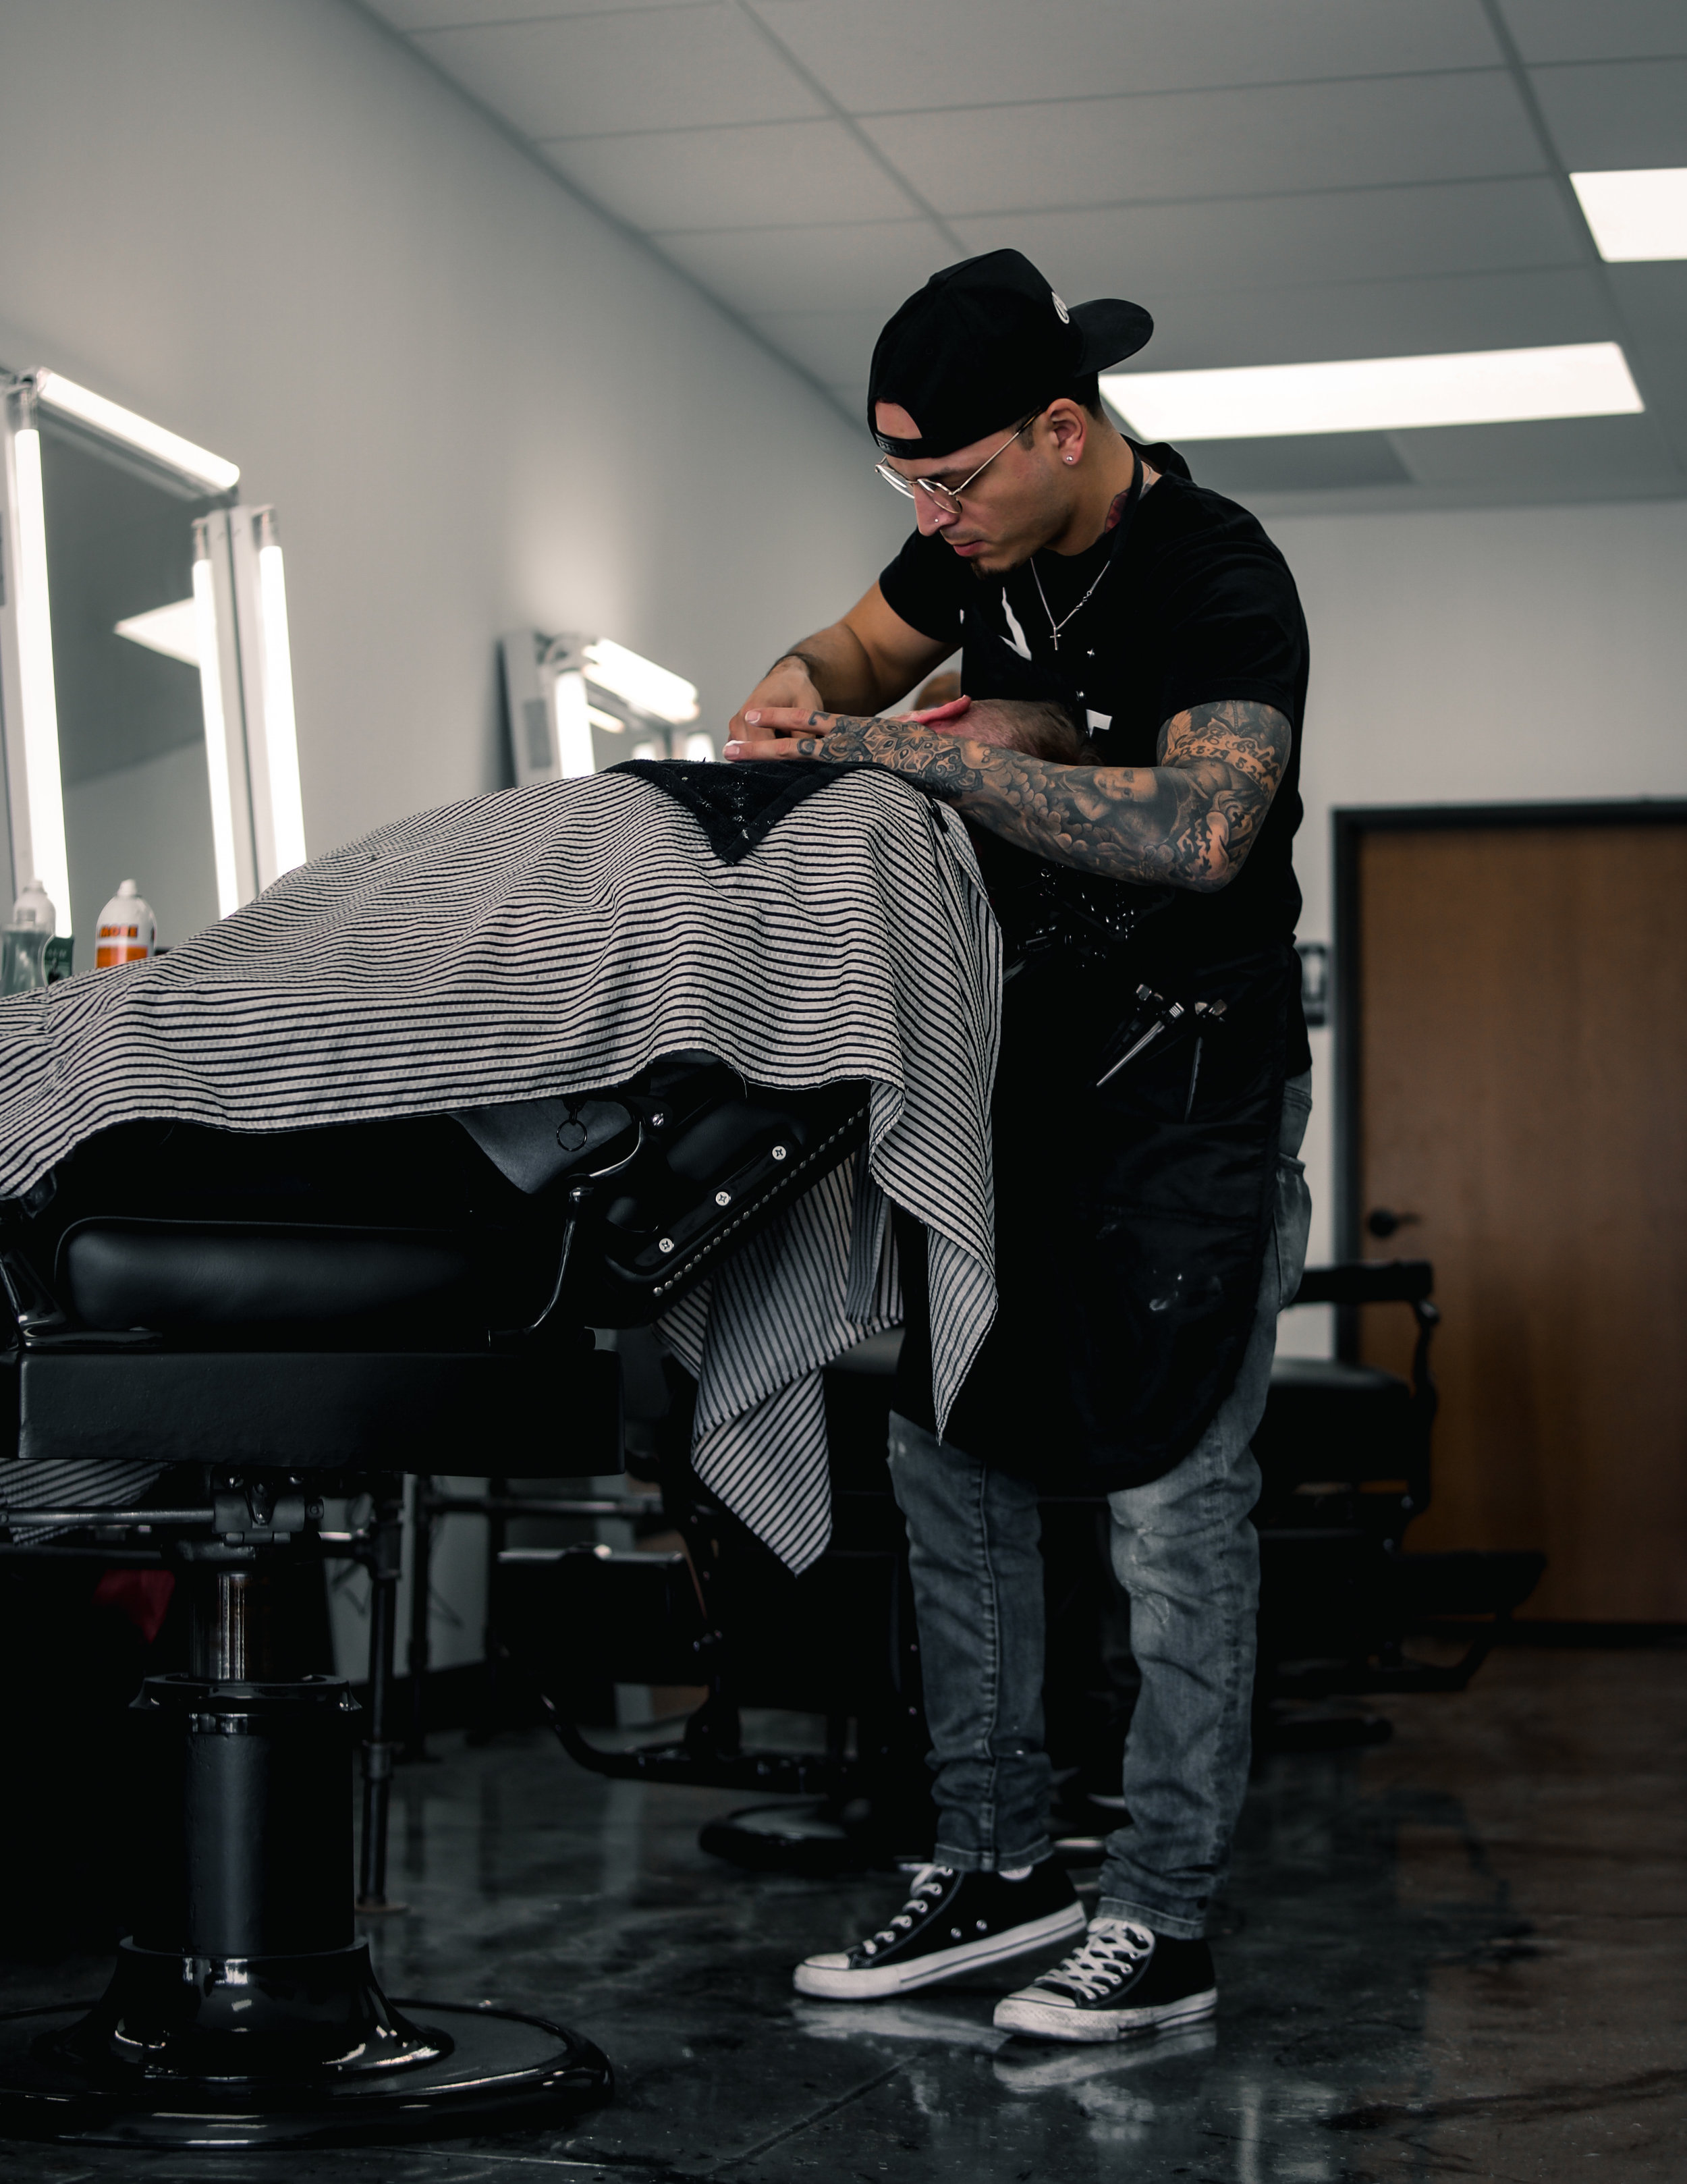 Julian Palafox - The Owner of Revolt Barbershop, Julian Palafox has been a licensed Barber in the Dallas metroplex specializing in men's hair styles, facials, and hot towel straight razor shaves for over 12 years. After working for several mens luxury shaving lines for more than 6 years and also accomplishing creating his own mens product line in 2018 he decided to venture off into establishing Revolt Barbershop, a Refined Urban Barbershop in the heart of Oak cliff, Tx.